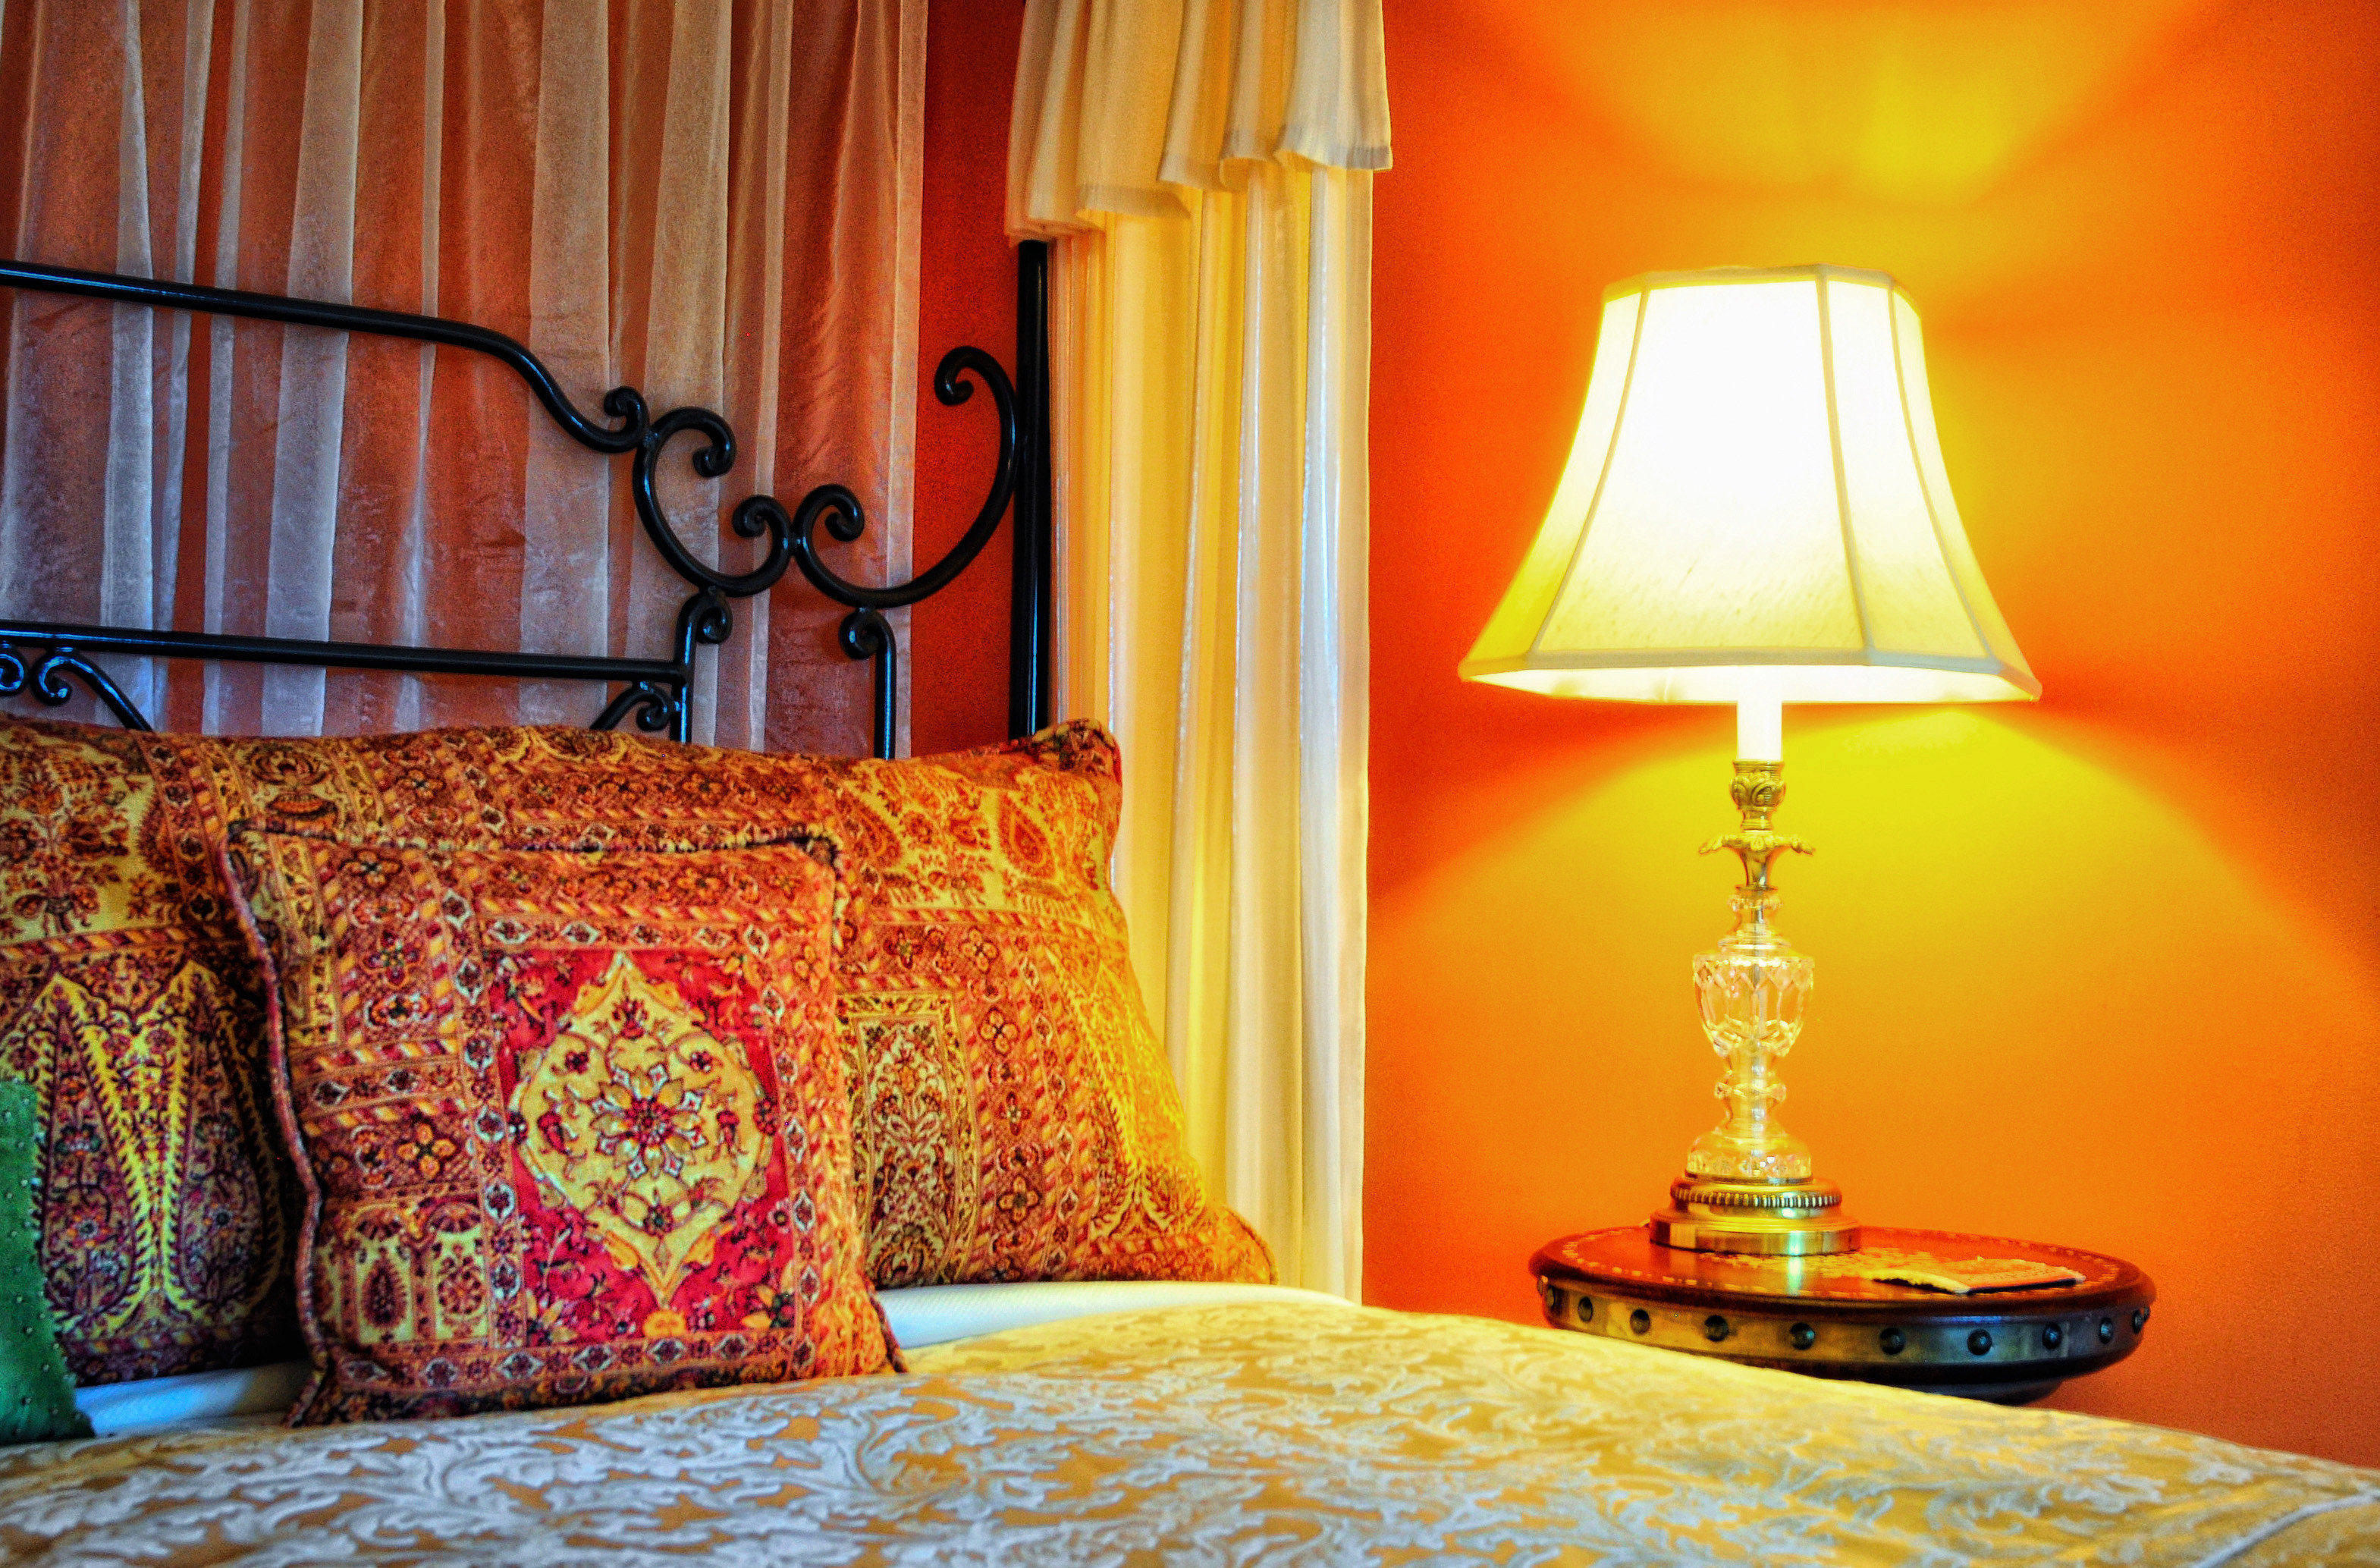 B&B Bedroom Classic Historic color yellow lighting bed sheet lamp orange textile